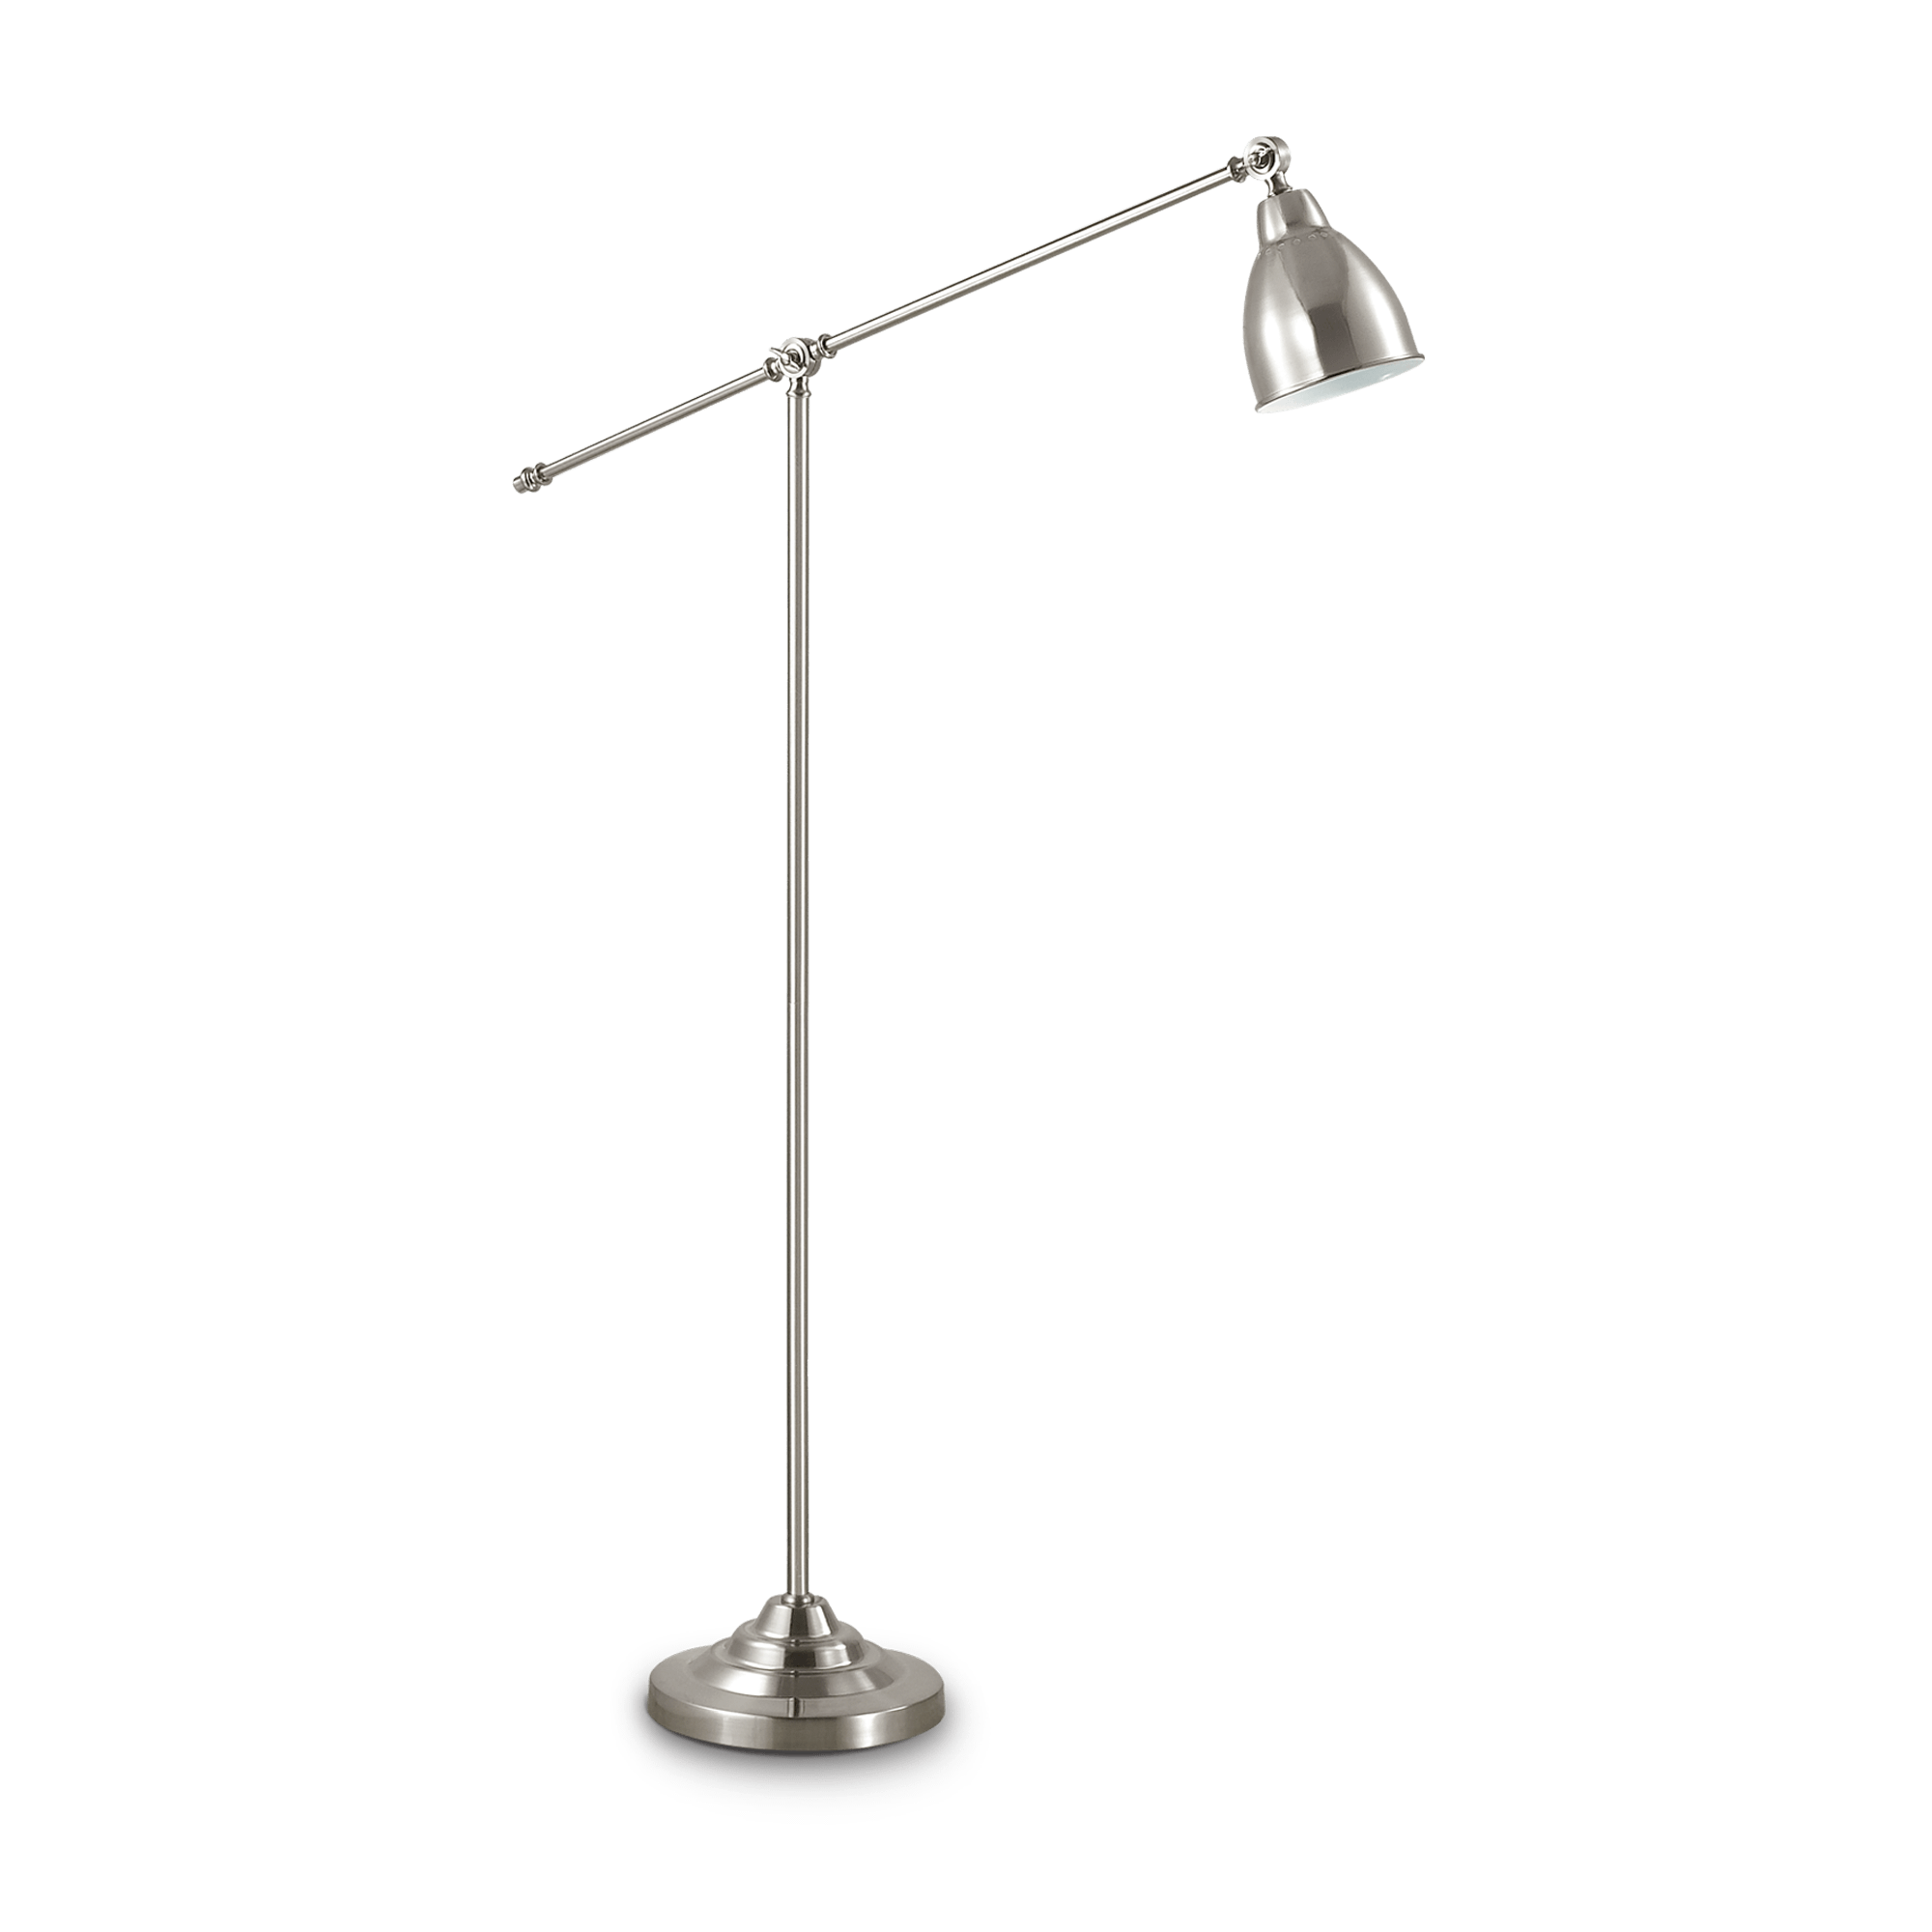 Ideal Lux 015286 NEWTON PT1 NICKEL állólámpa